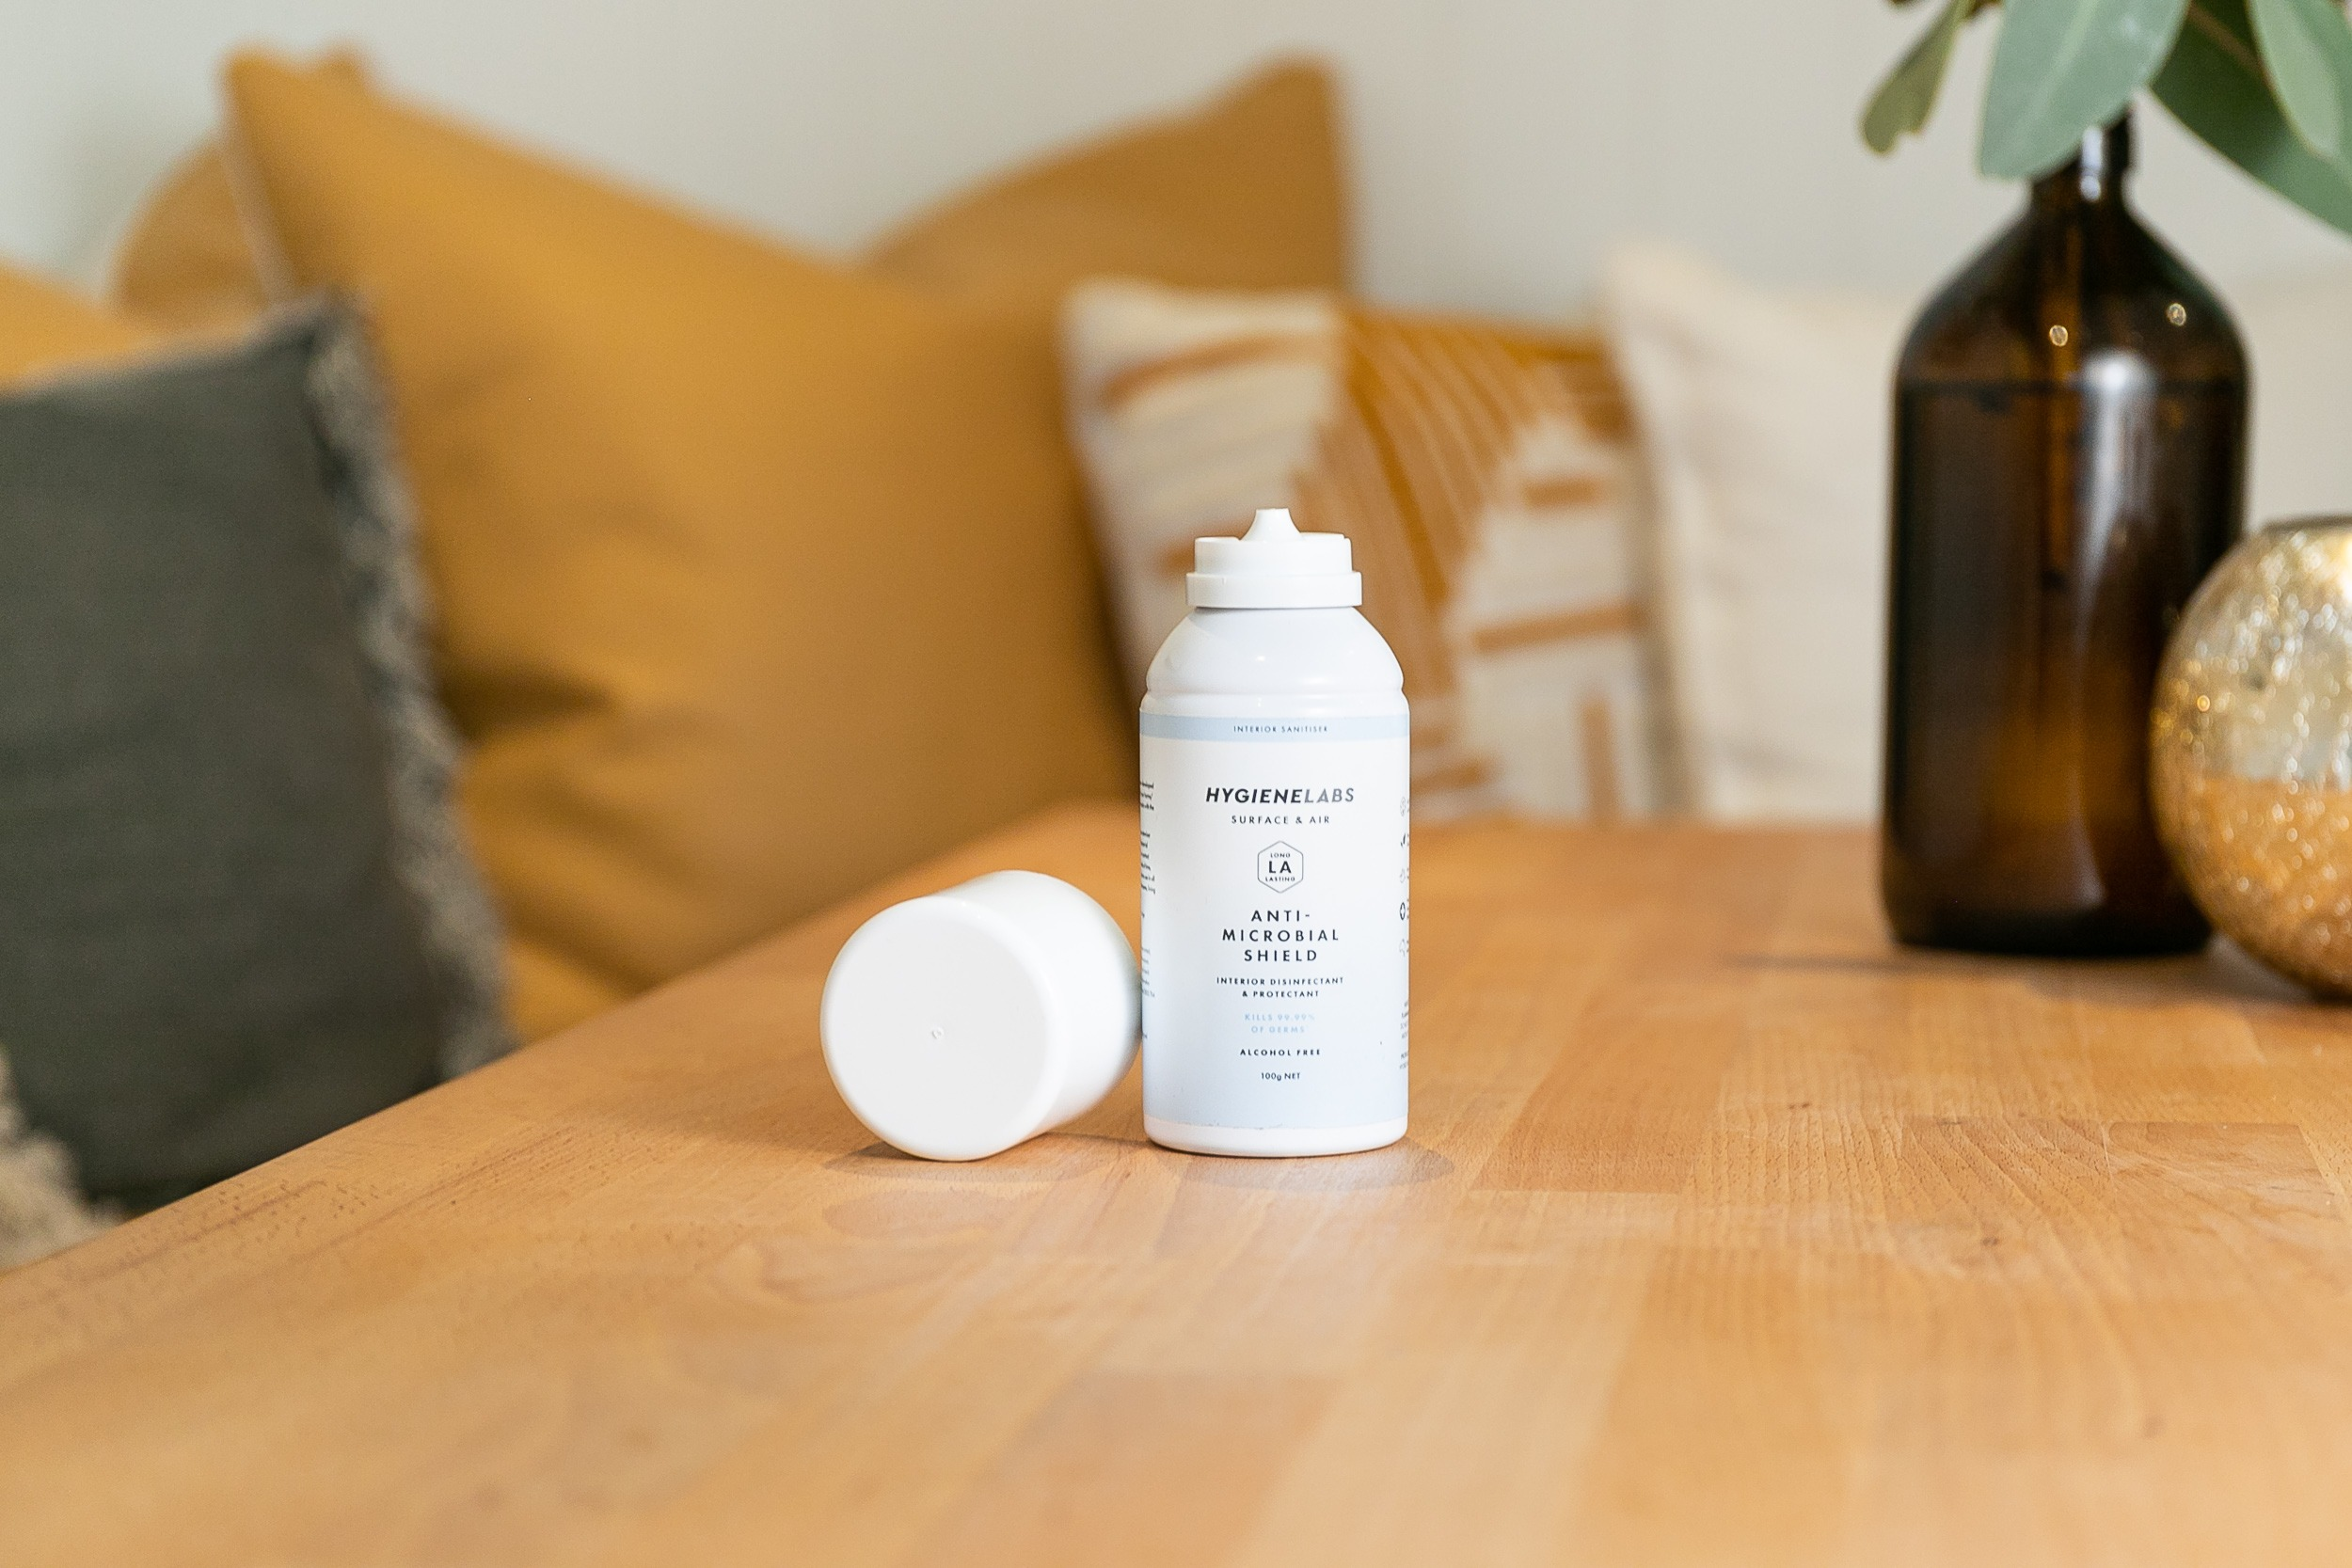 Antimicrobial Shield Room Sanitizer